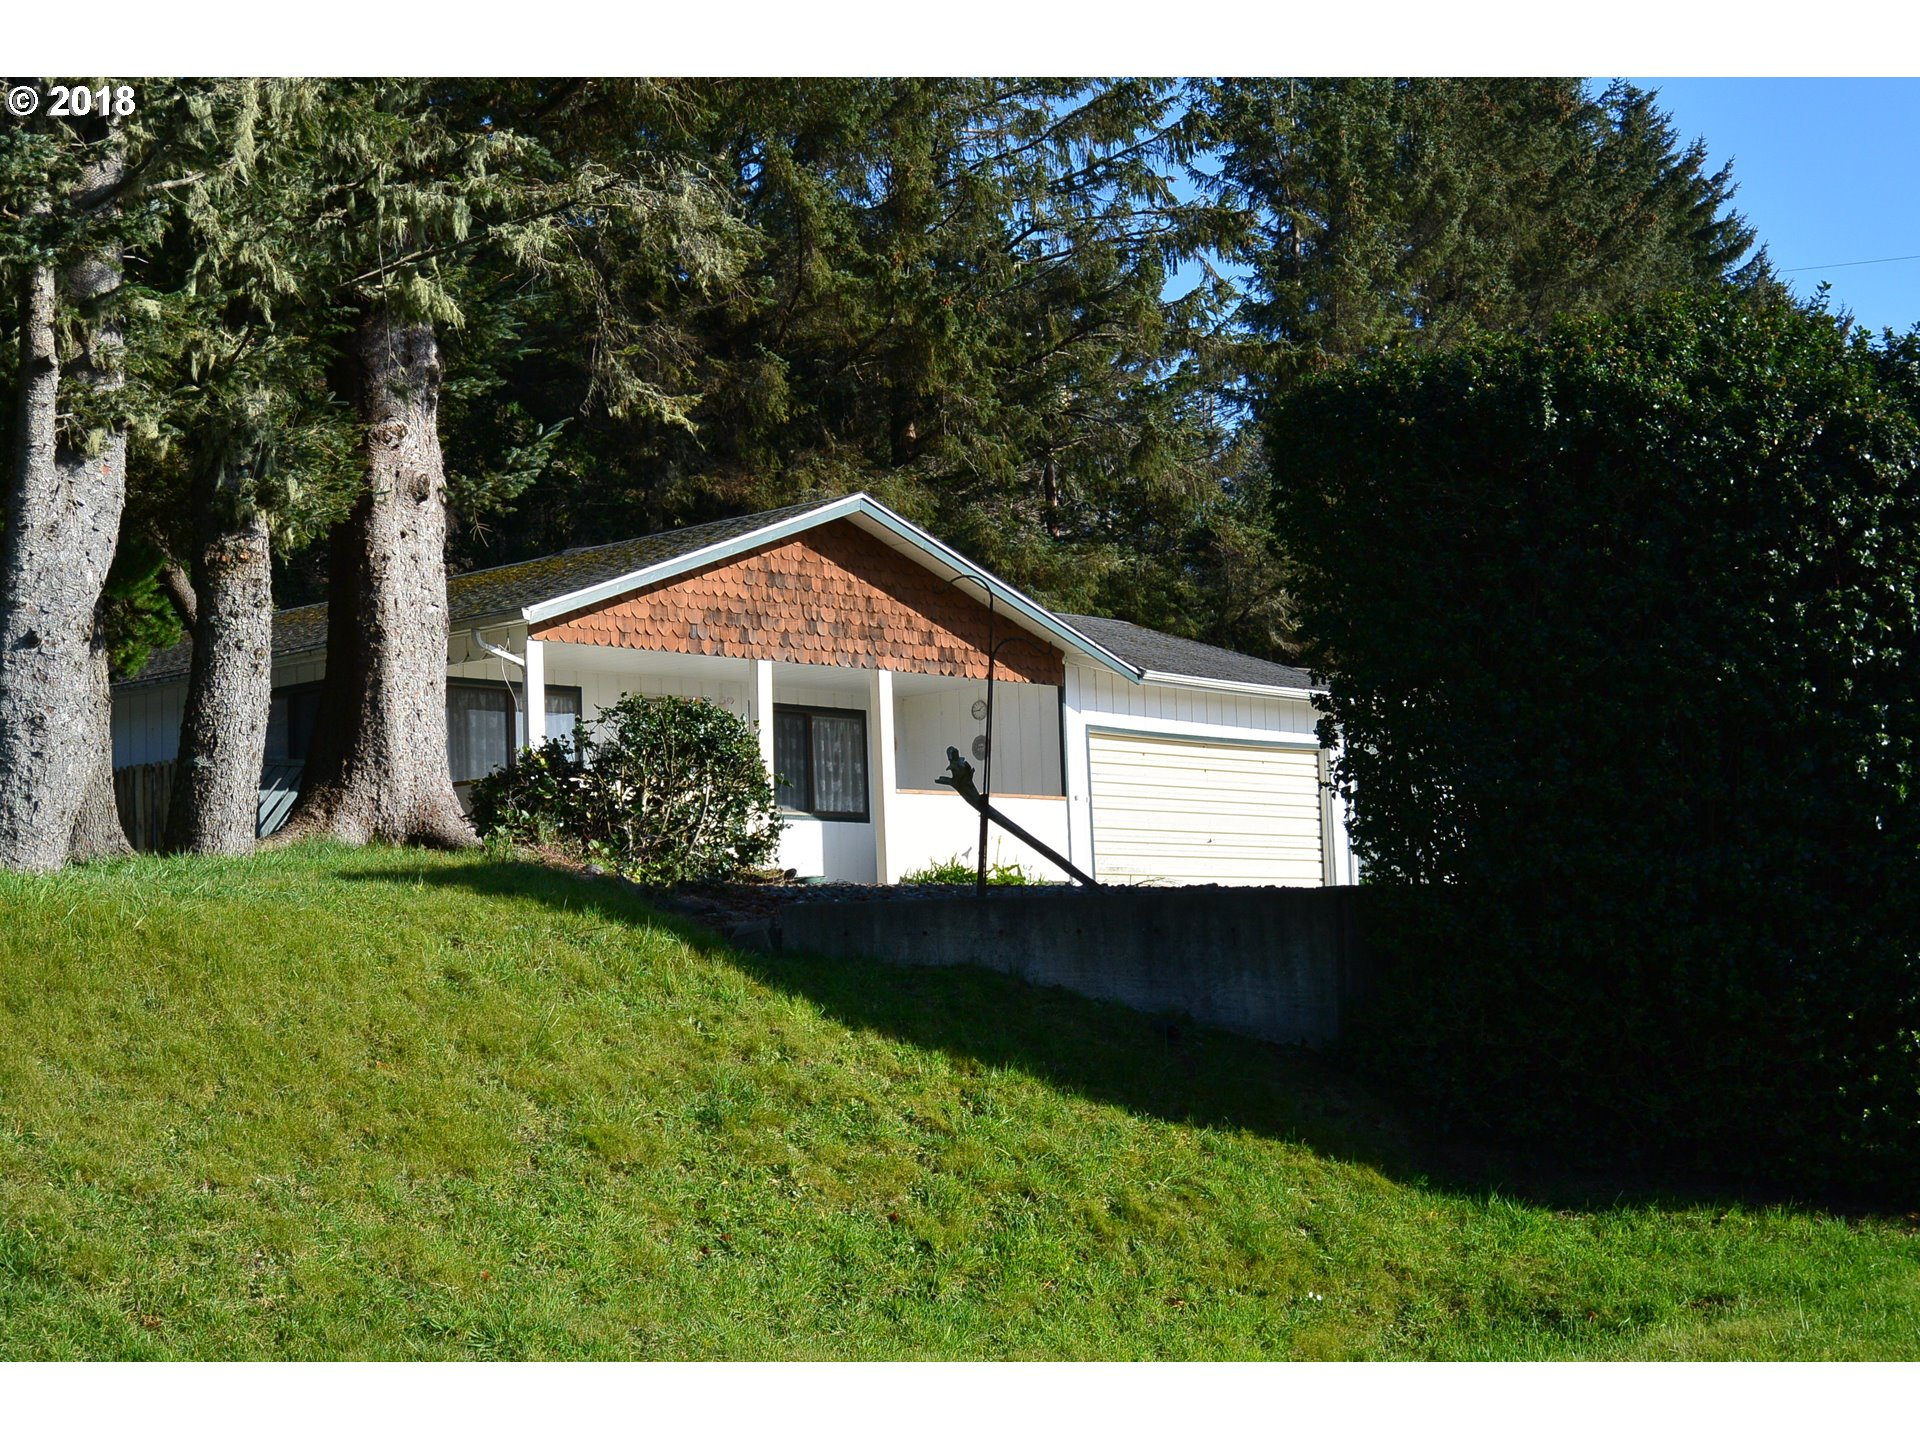 30411 HILLSIDE TR, GOLD BEACH, OR 97444  Photo 2